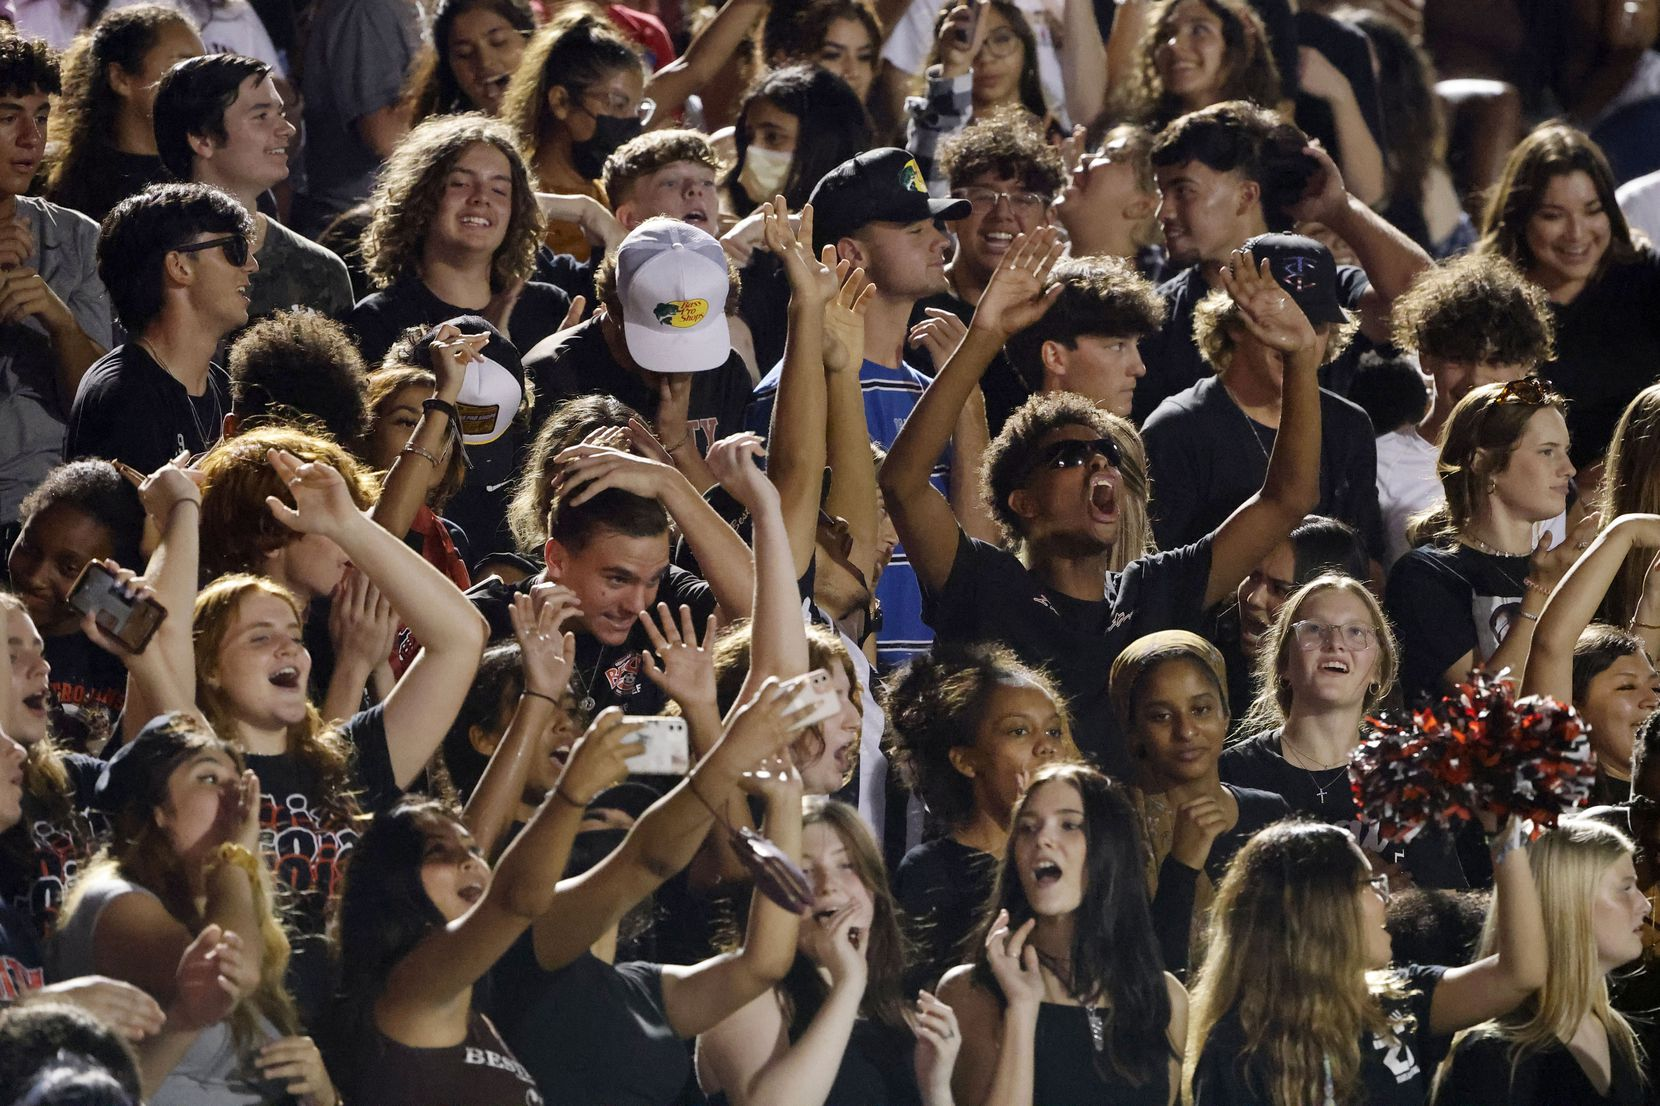 The Euless Trinity student section cheers during the first half of their high school football game against Arlington Lamar, in Bedford, Texas on Aug. 26, 2021. (Michael Ainsworth/Special Contributor)